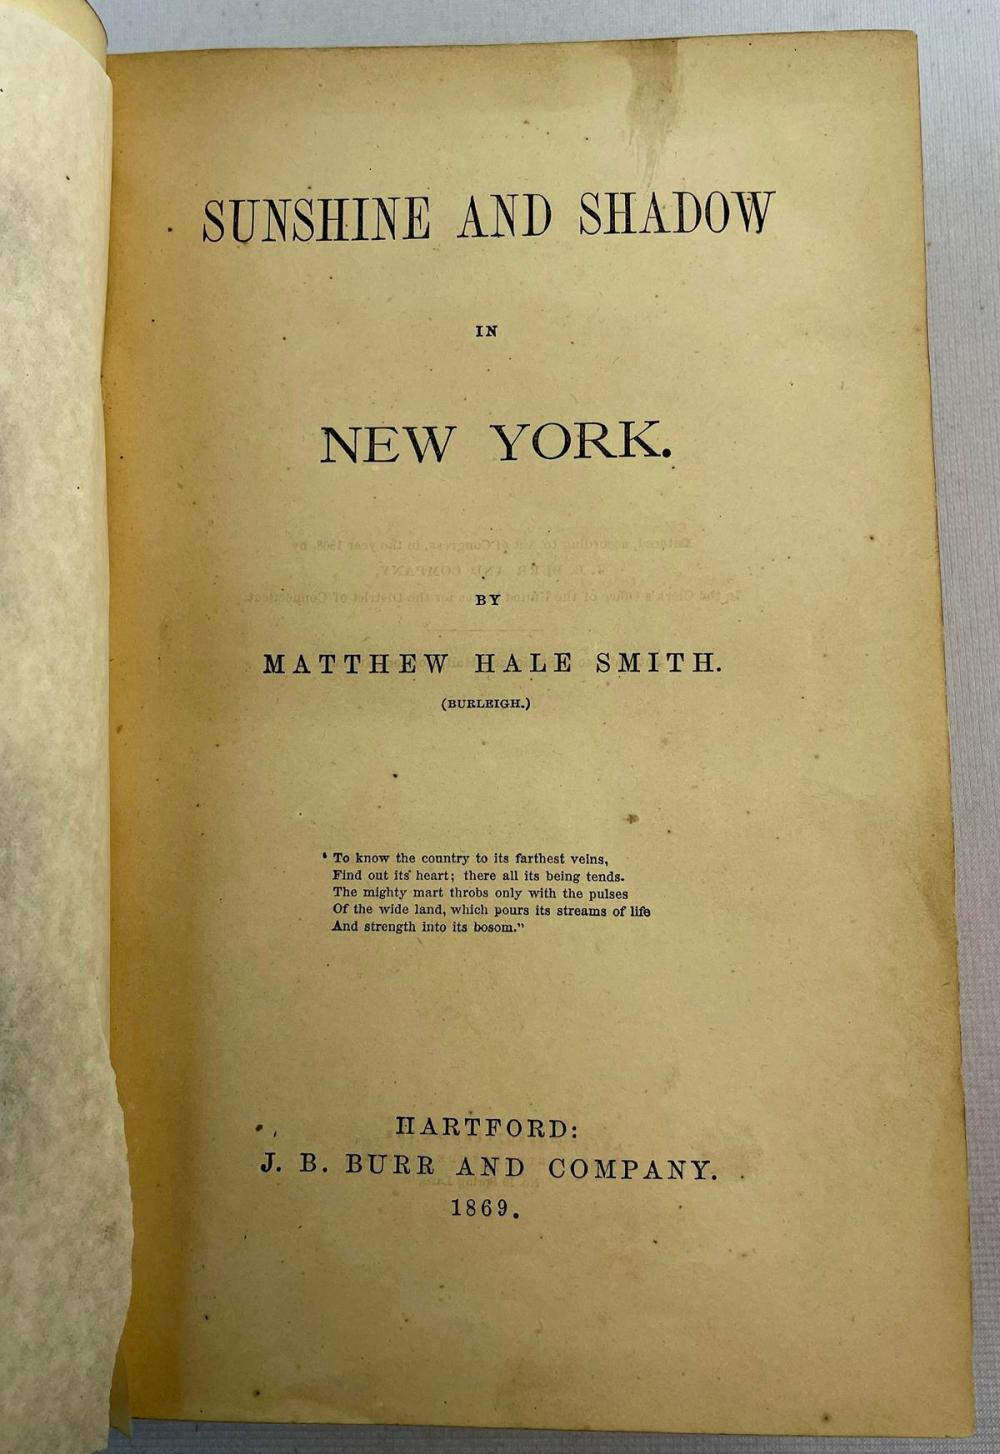 1866 Sunshine And Shadow In New York by Mathew Hale Smith ILLUSTRATED